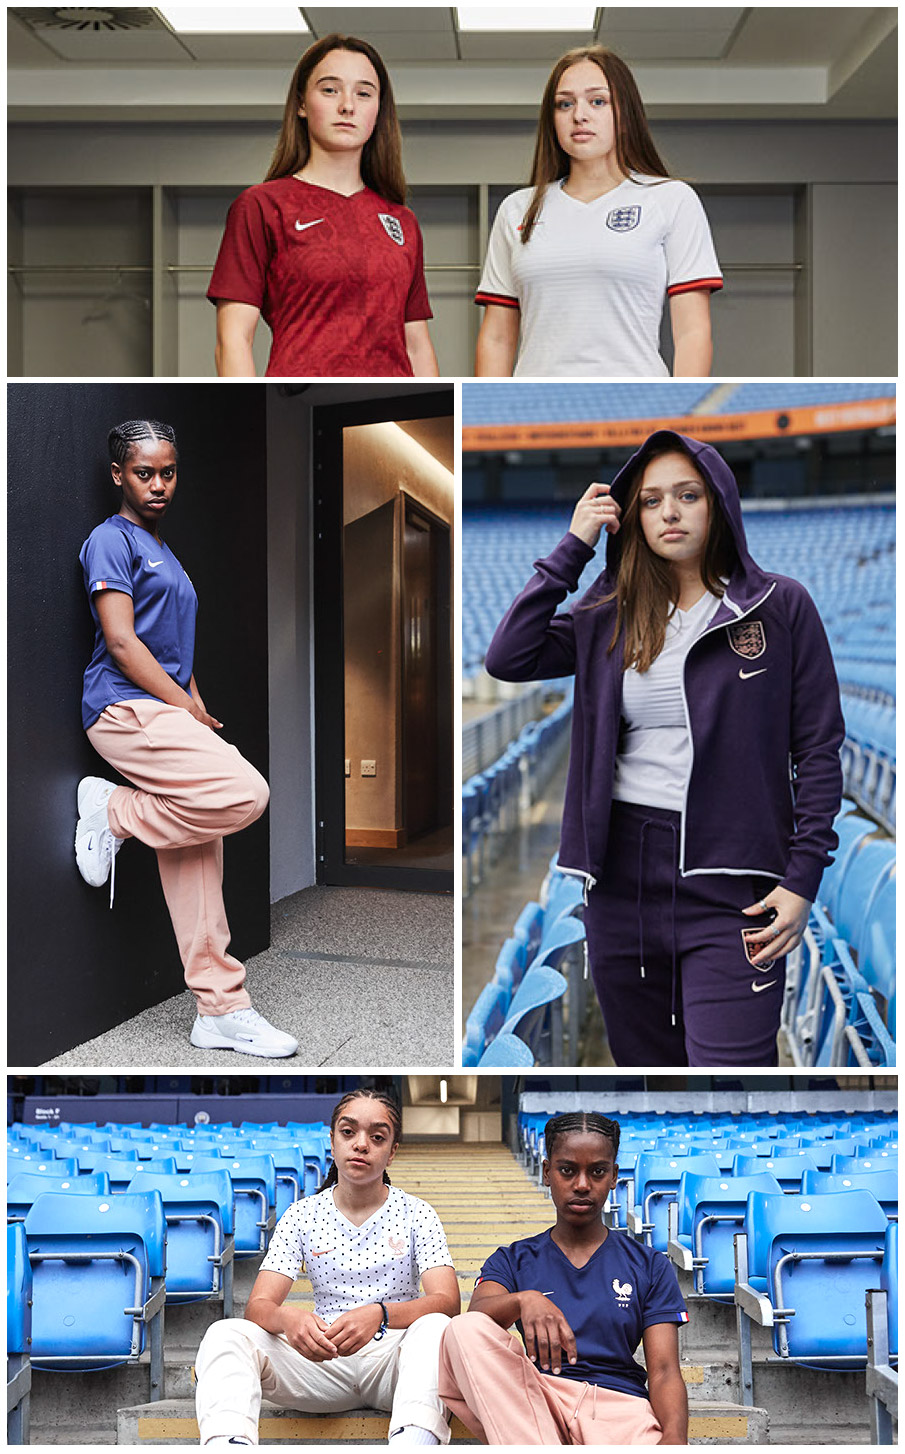 Pro DIrect Academy girls modeling Nike world cup kits